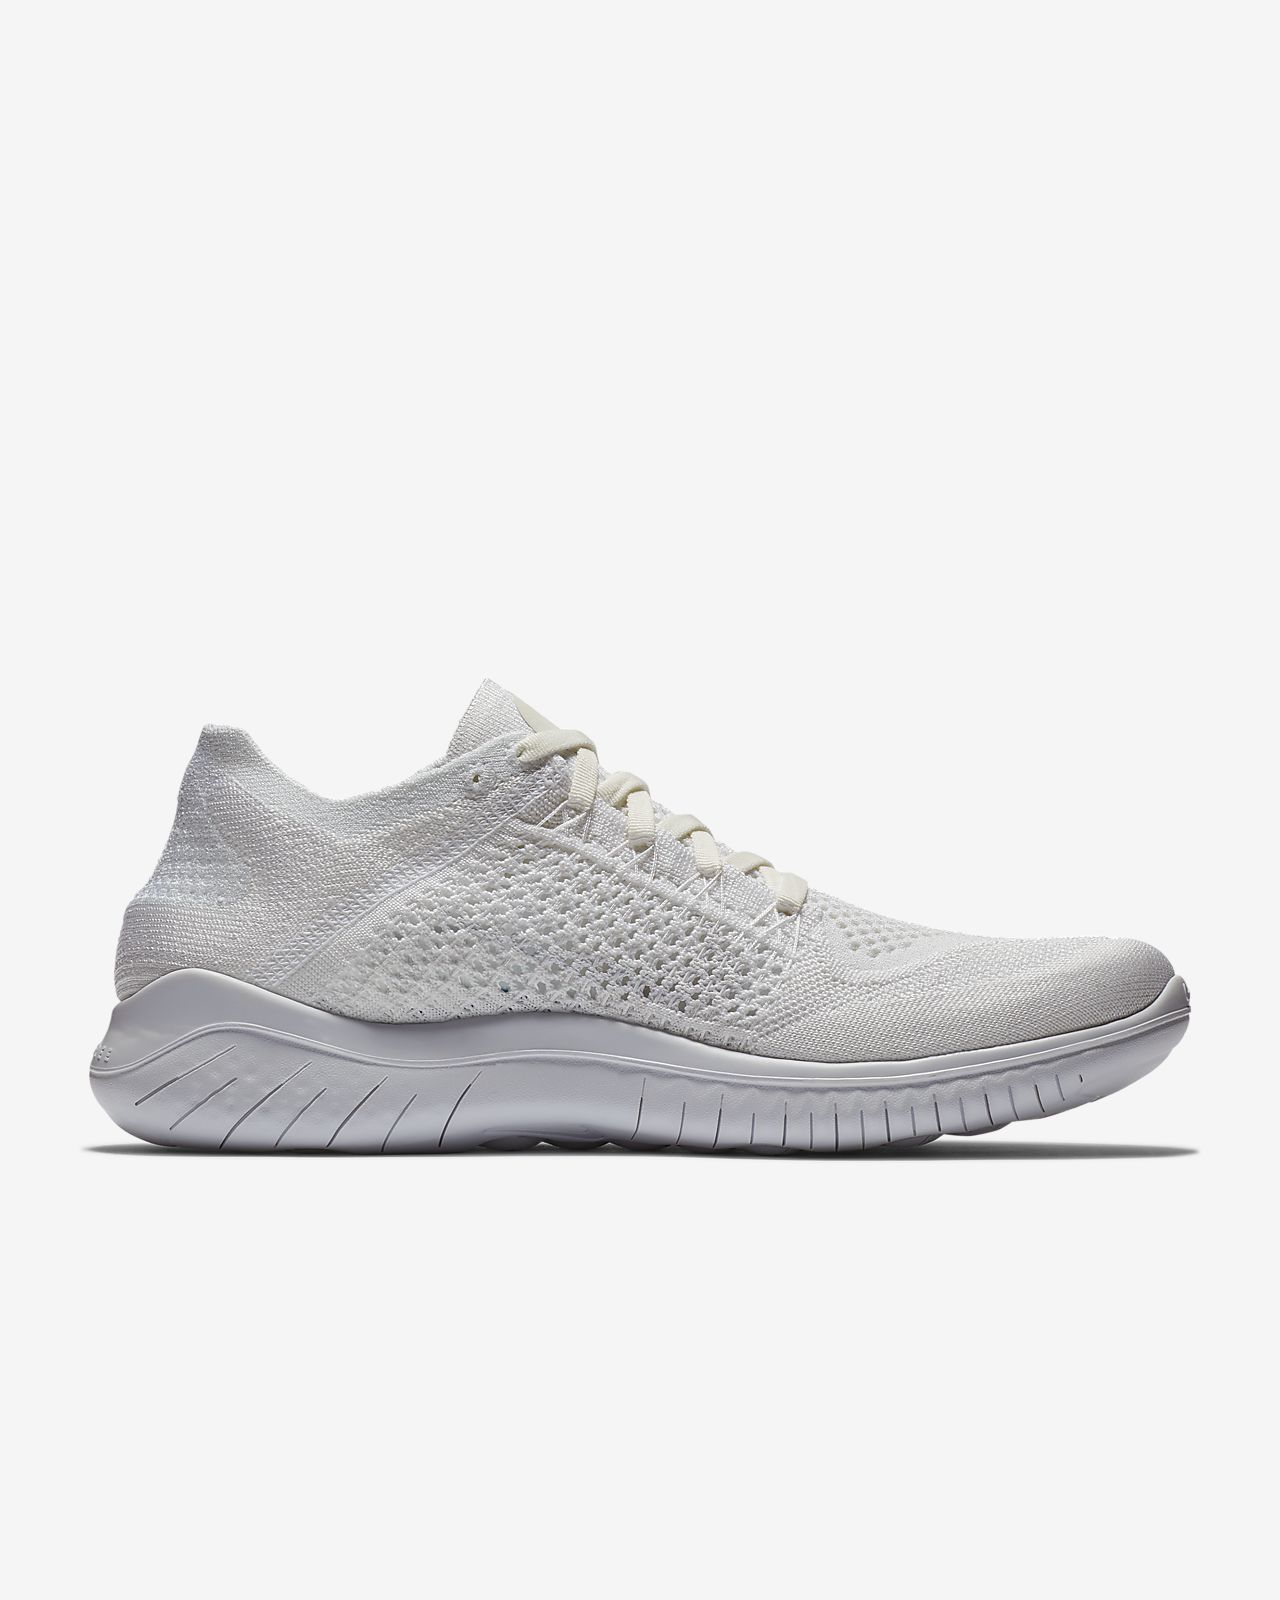 buy popular daa82 b2893 ... Nike Free RN Flyknit 2018 Men s Running Shoe